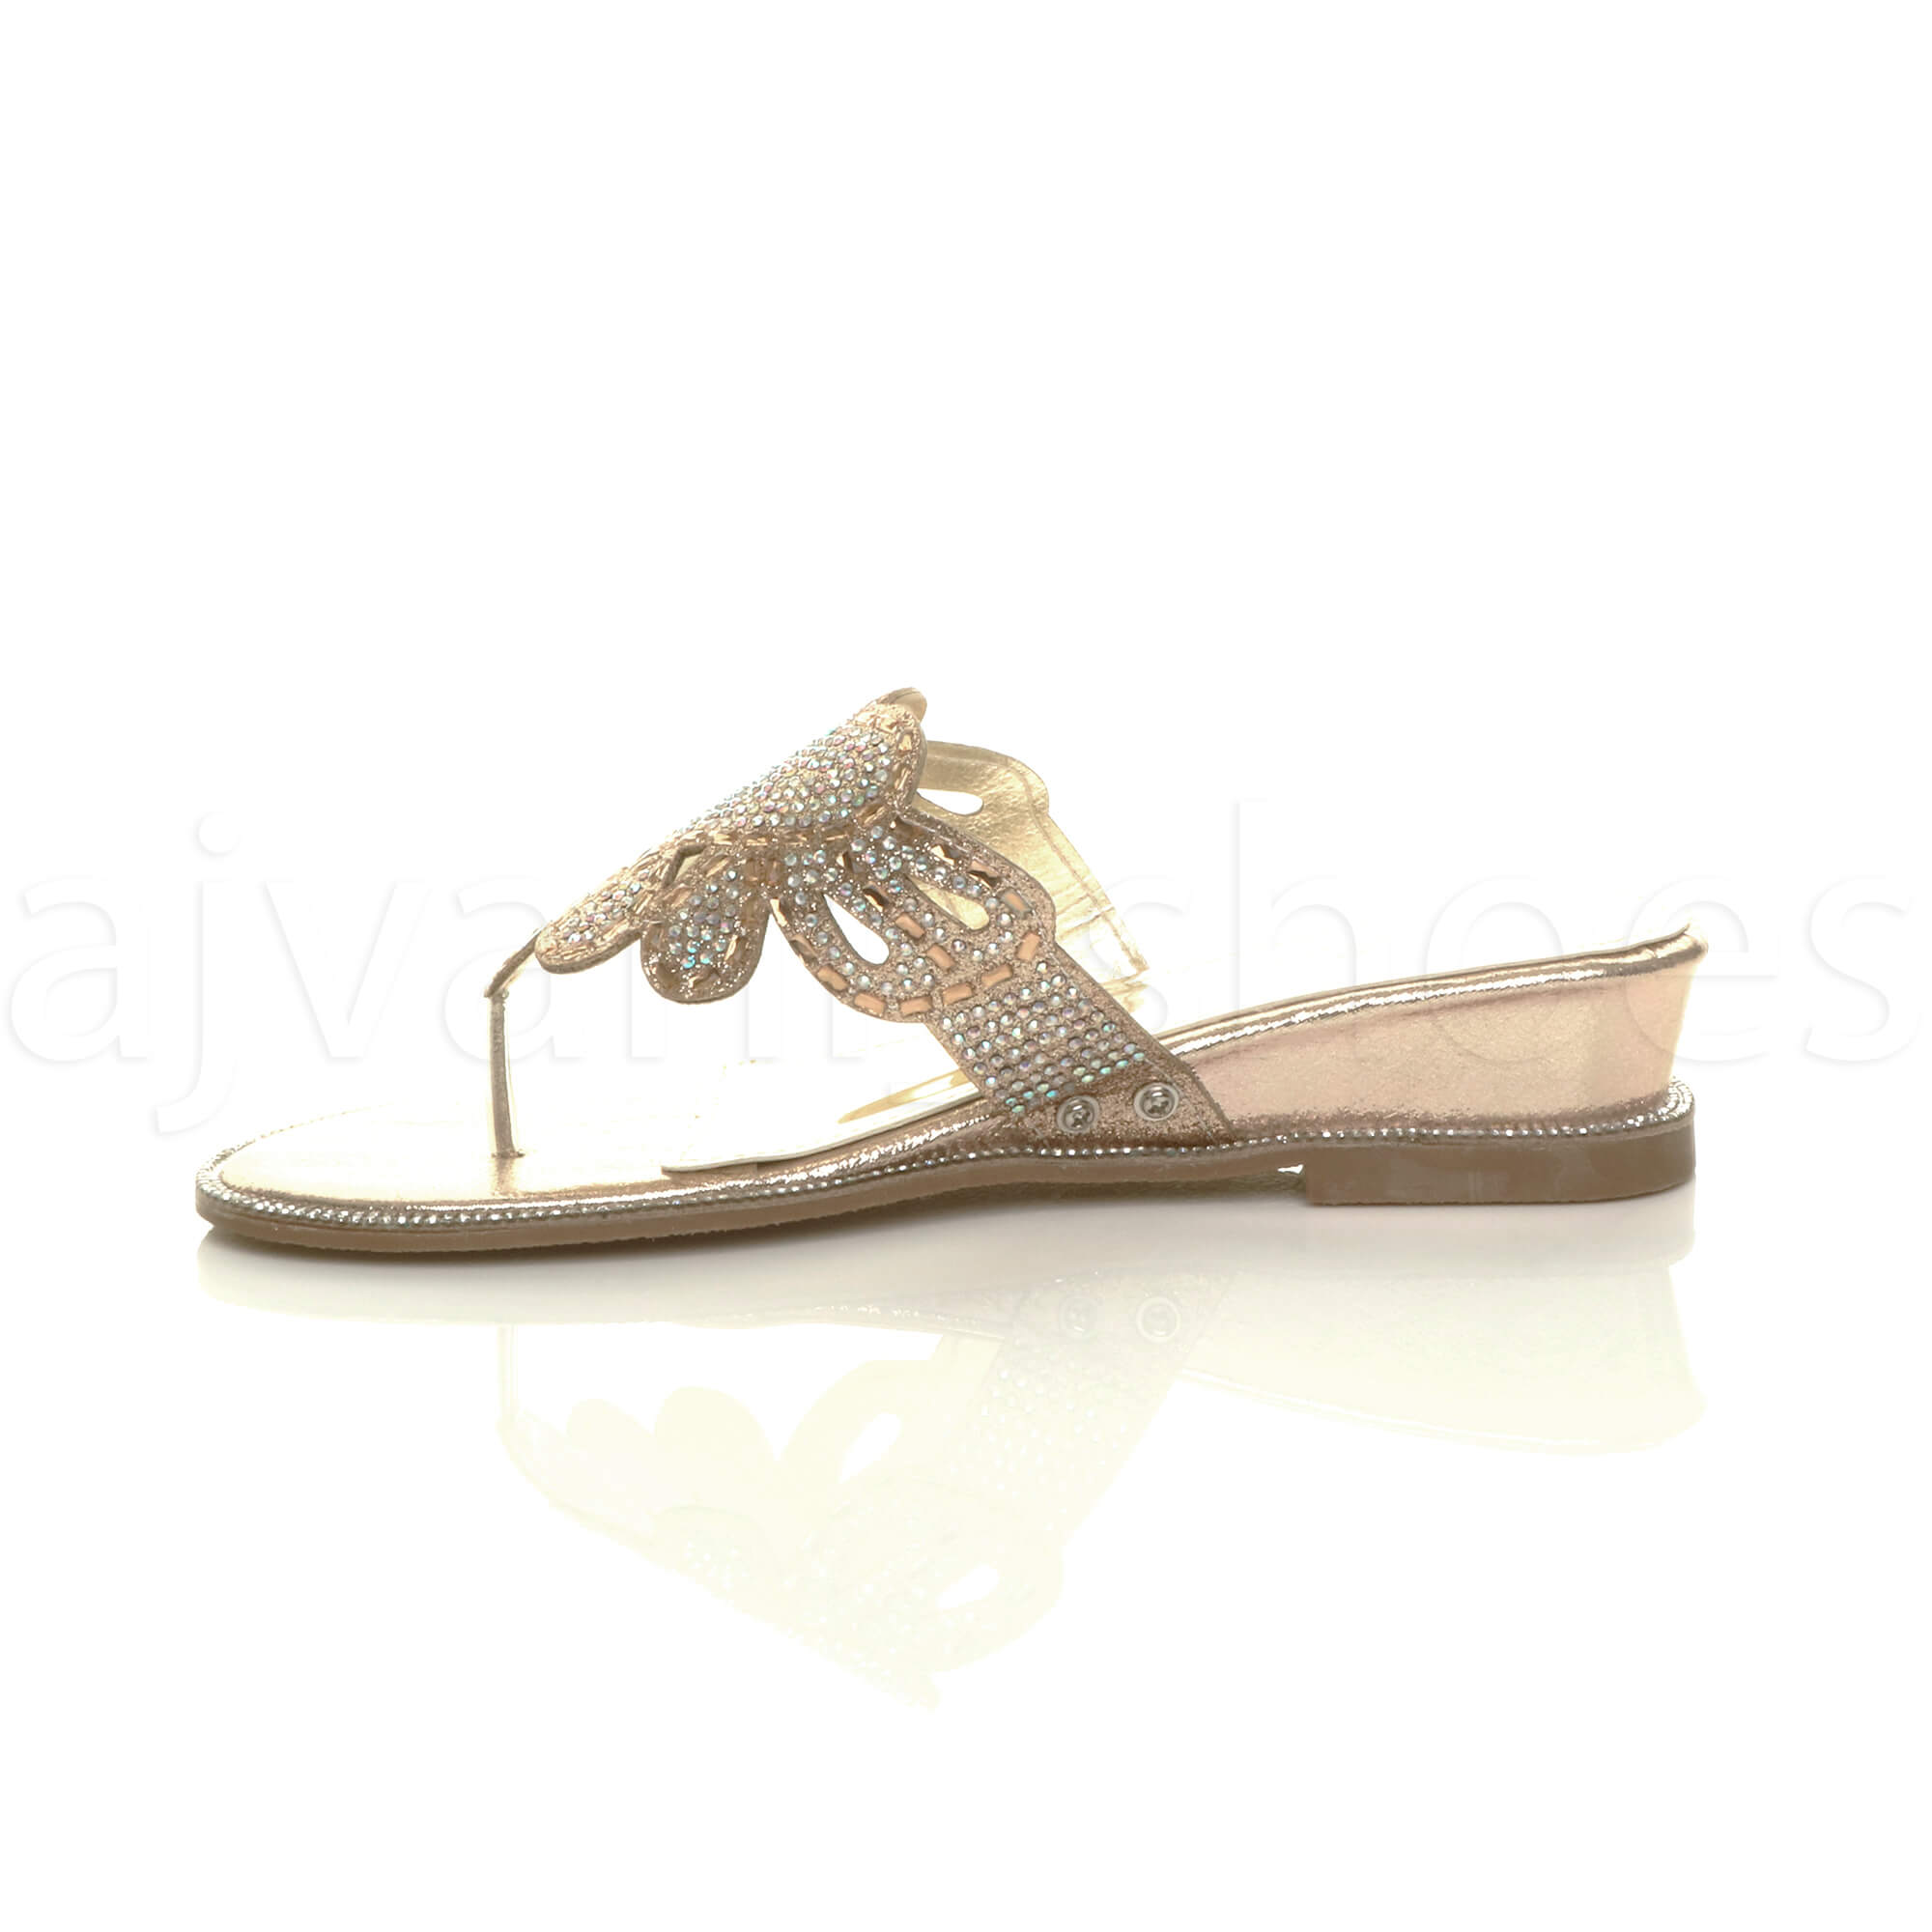 WOMENS-LADIES-LOW-MID-WEDGE-HEEL-DIAMANTE-EVENING-TOE-POST-SANDALS-MULES-SIZE thumbnail 12